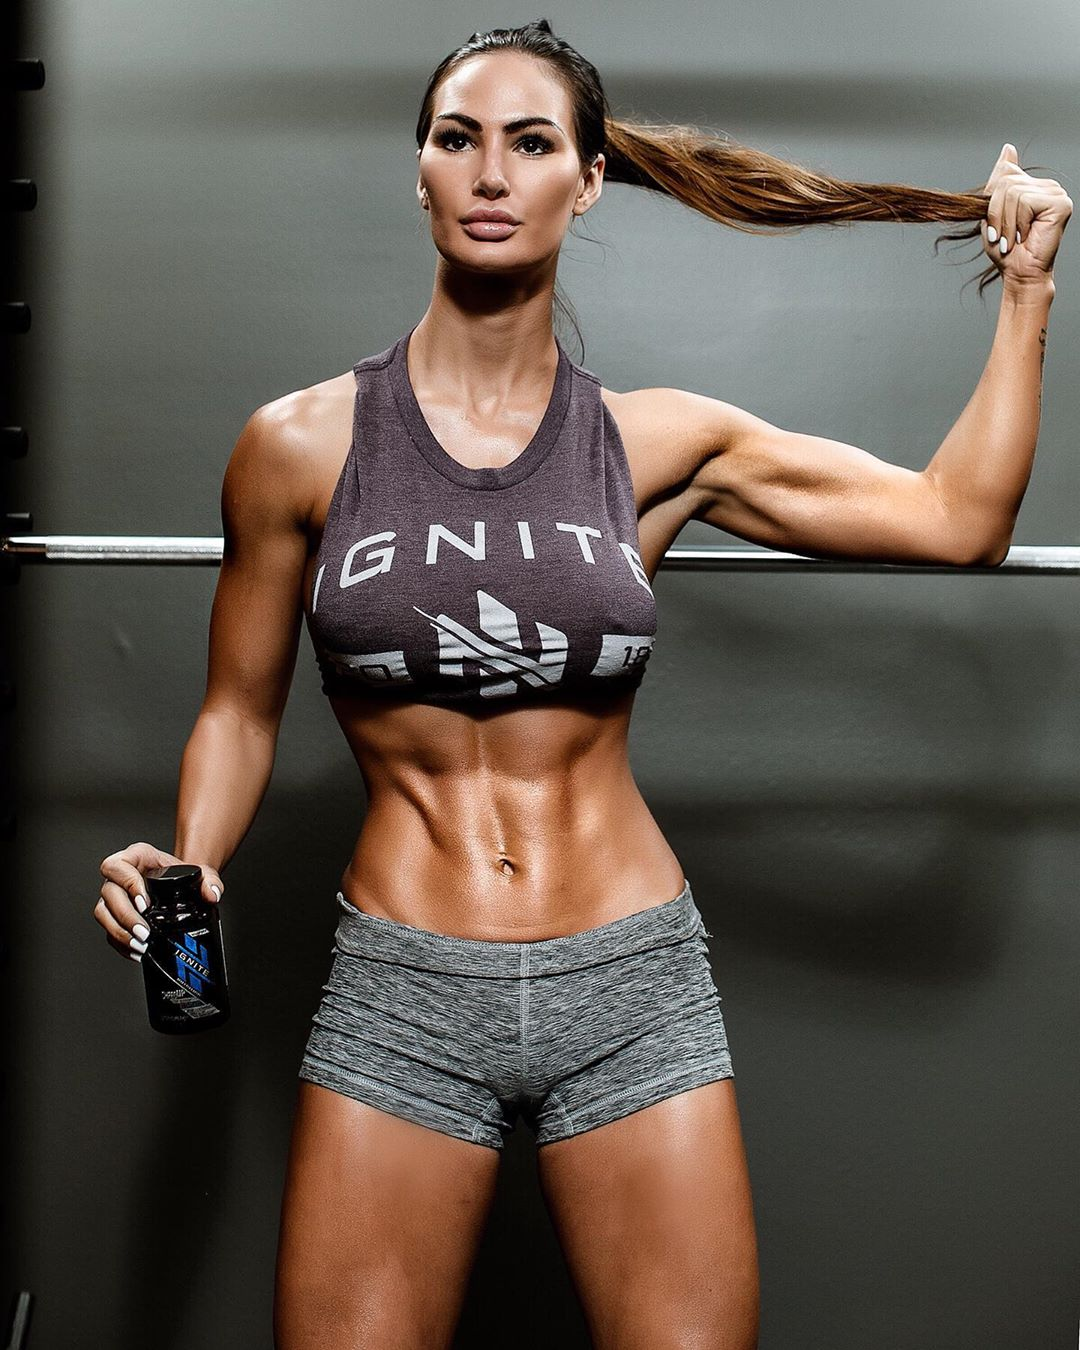 Katelyn Runck Hot Long Hair Tail - Katelyn Runck Net Worth, Pics, Wallpapers, Career and Biography